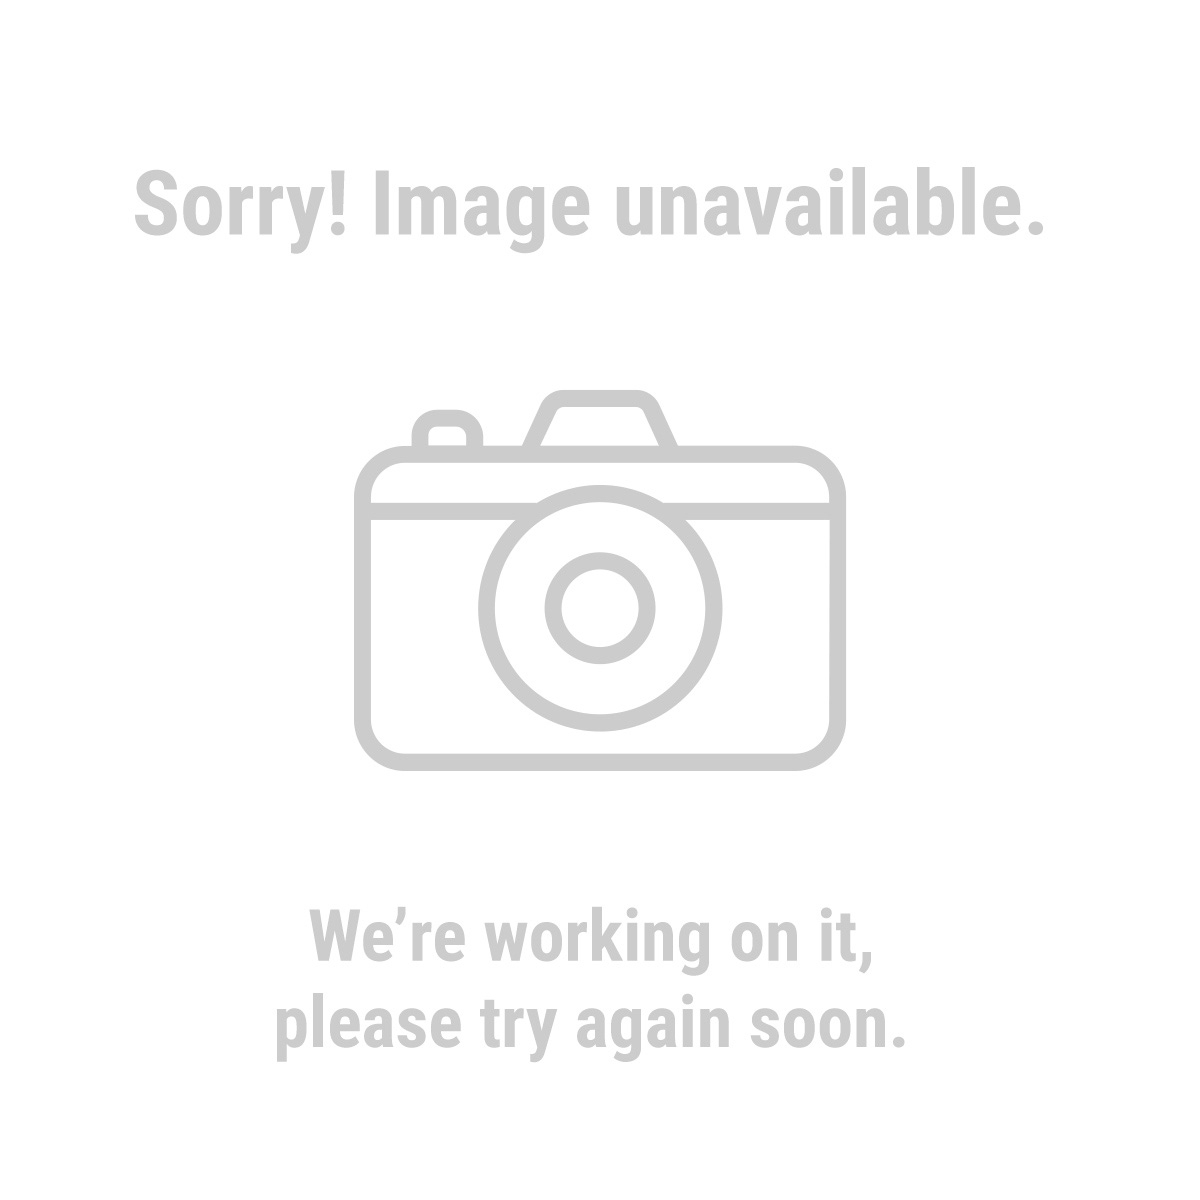 Fisherman's Habit 66062 Stainless Steel Fillet Glove